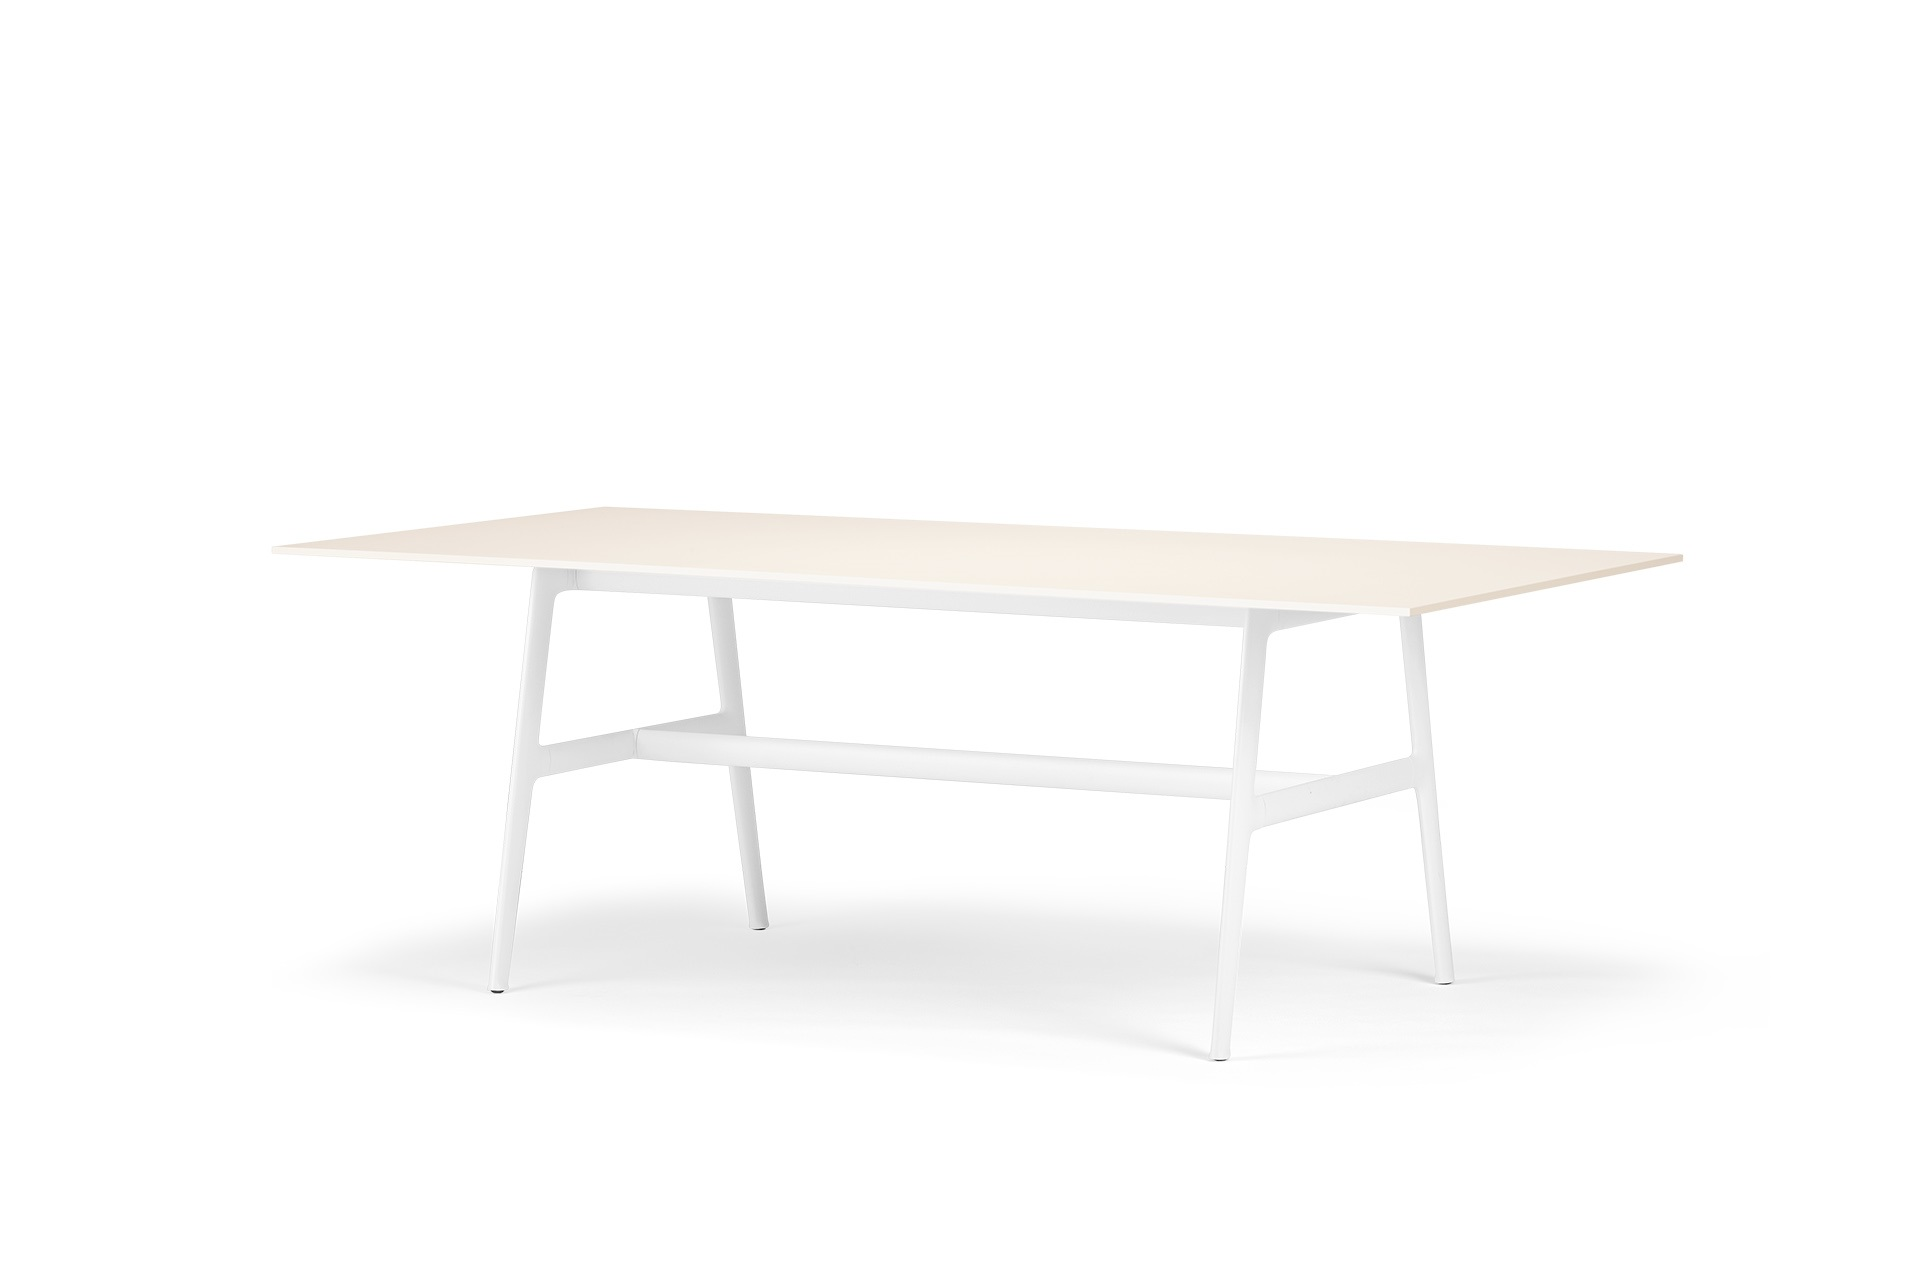 Dedon Seax Diningtable 100x200cm White